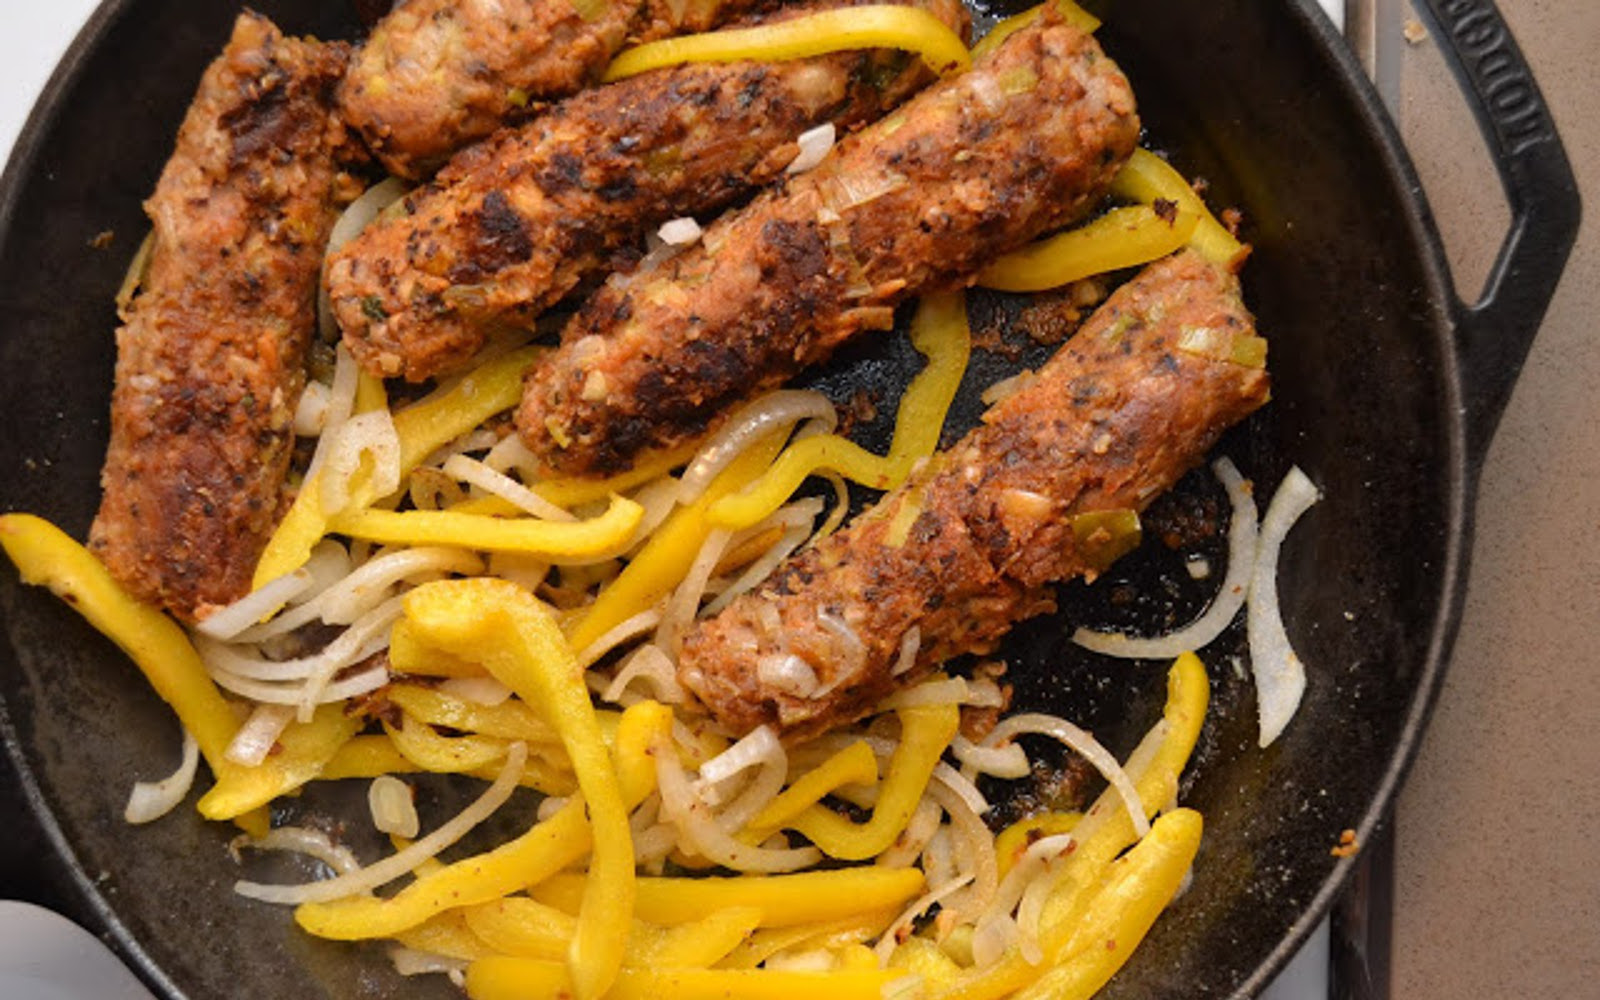 Vegan Black-Eyed Pea and Leek Sausages with peppers